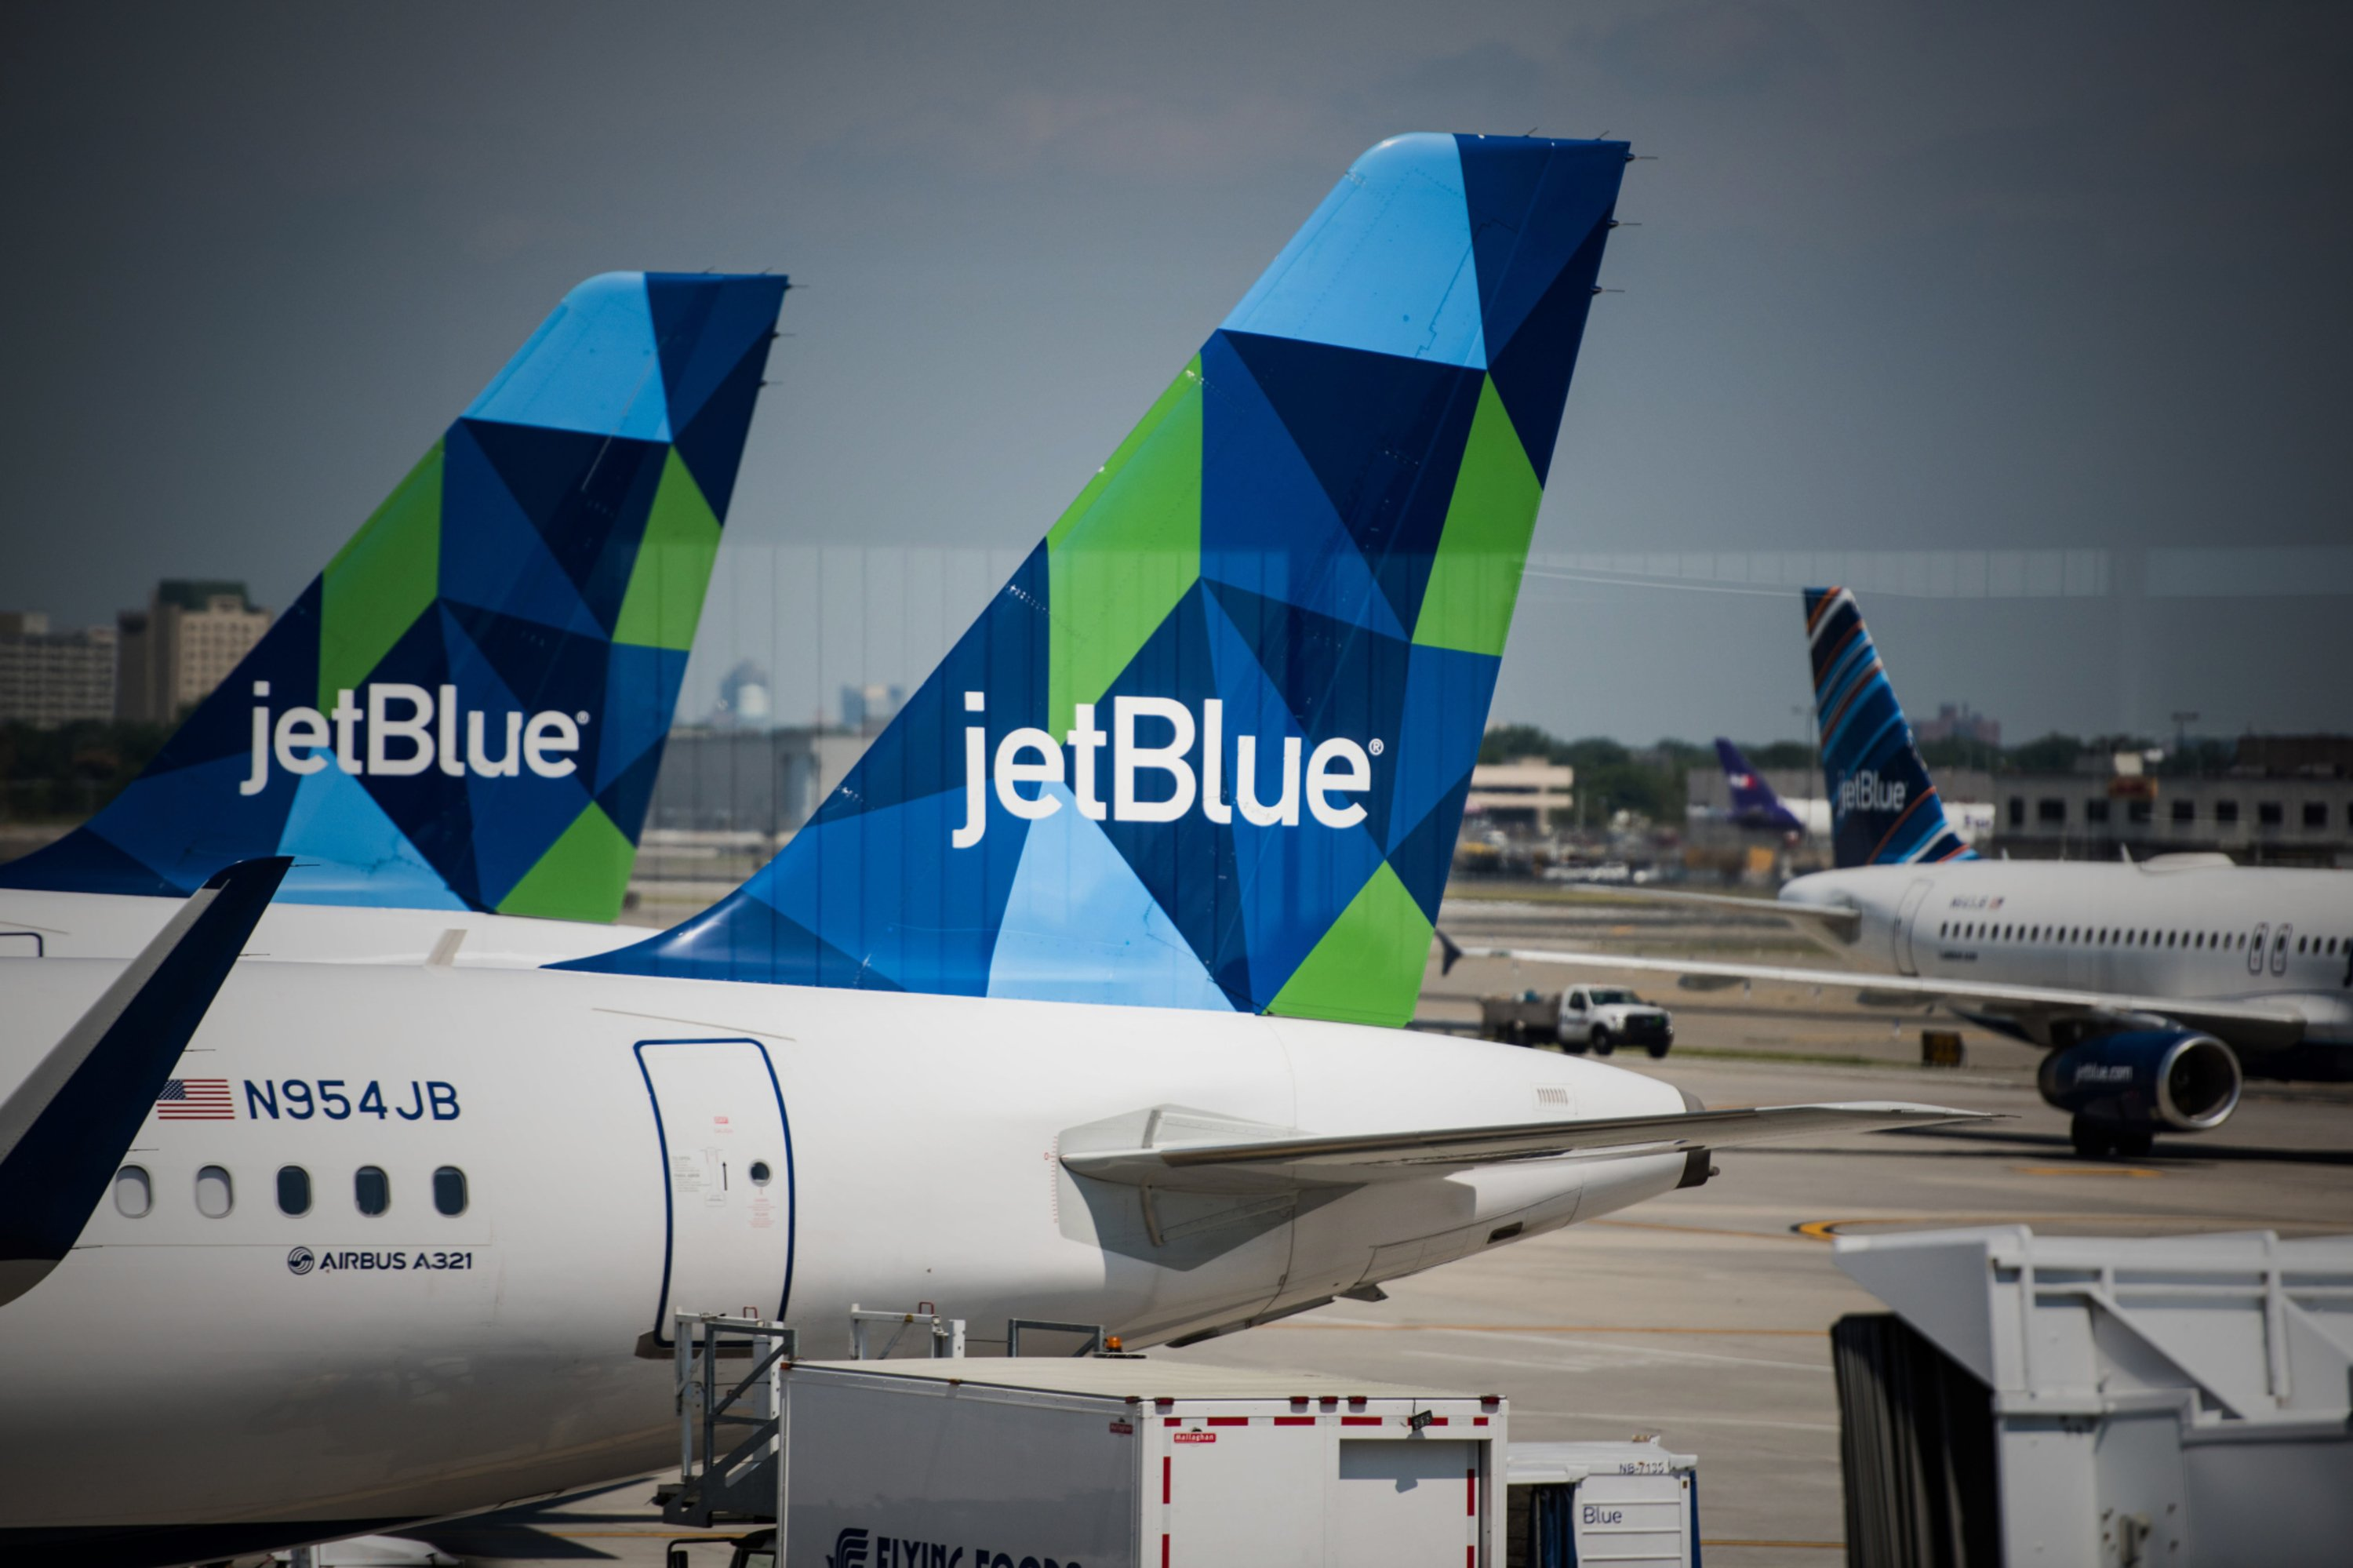 JetBlue plots a course to become first major carbon-neutral airline in U.S.